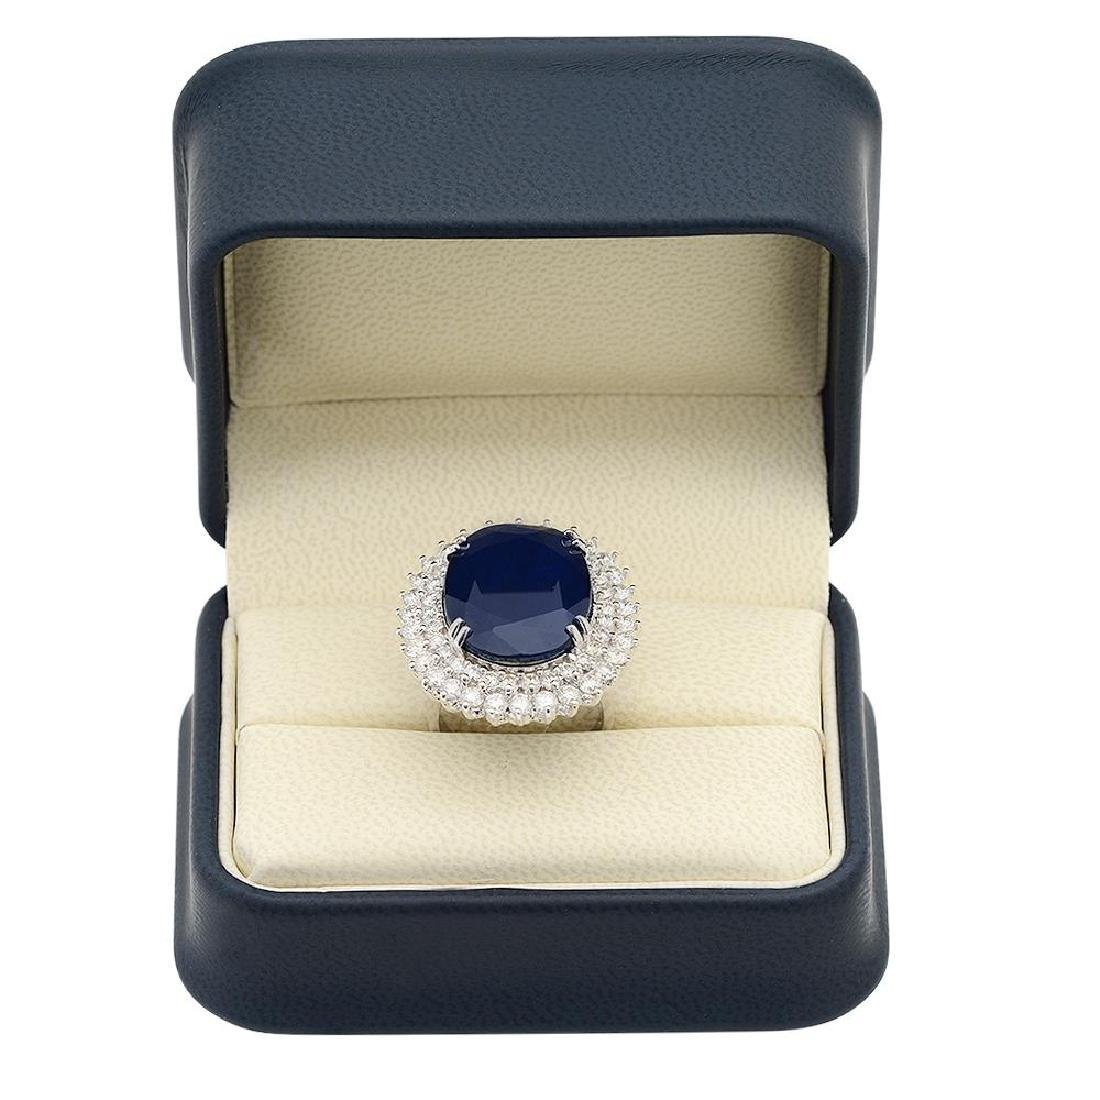 14K Gold 25.57ct Sapphire 3.39ct Diamond Ring - 4